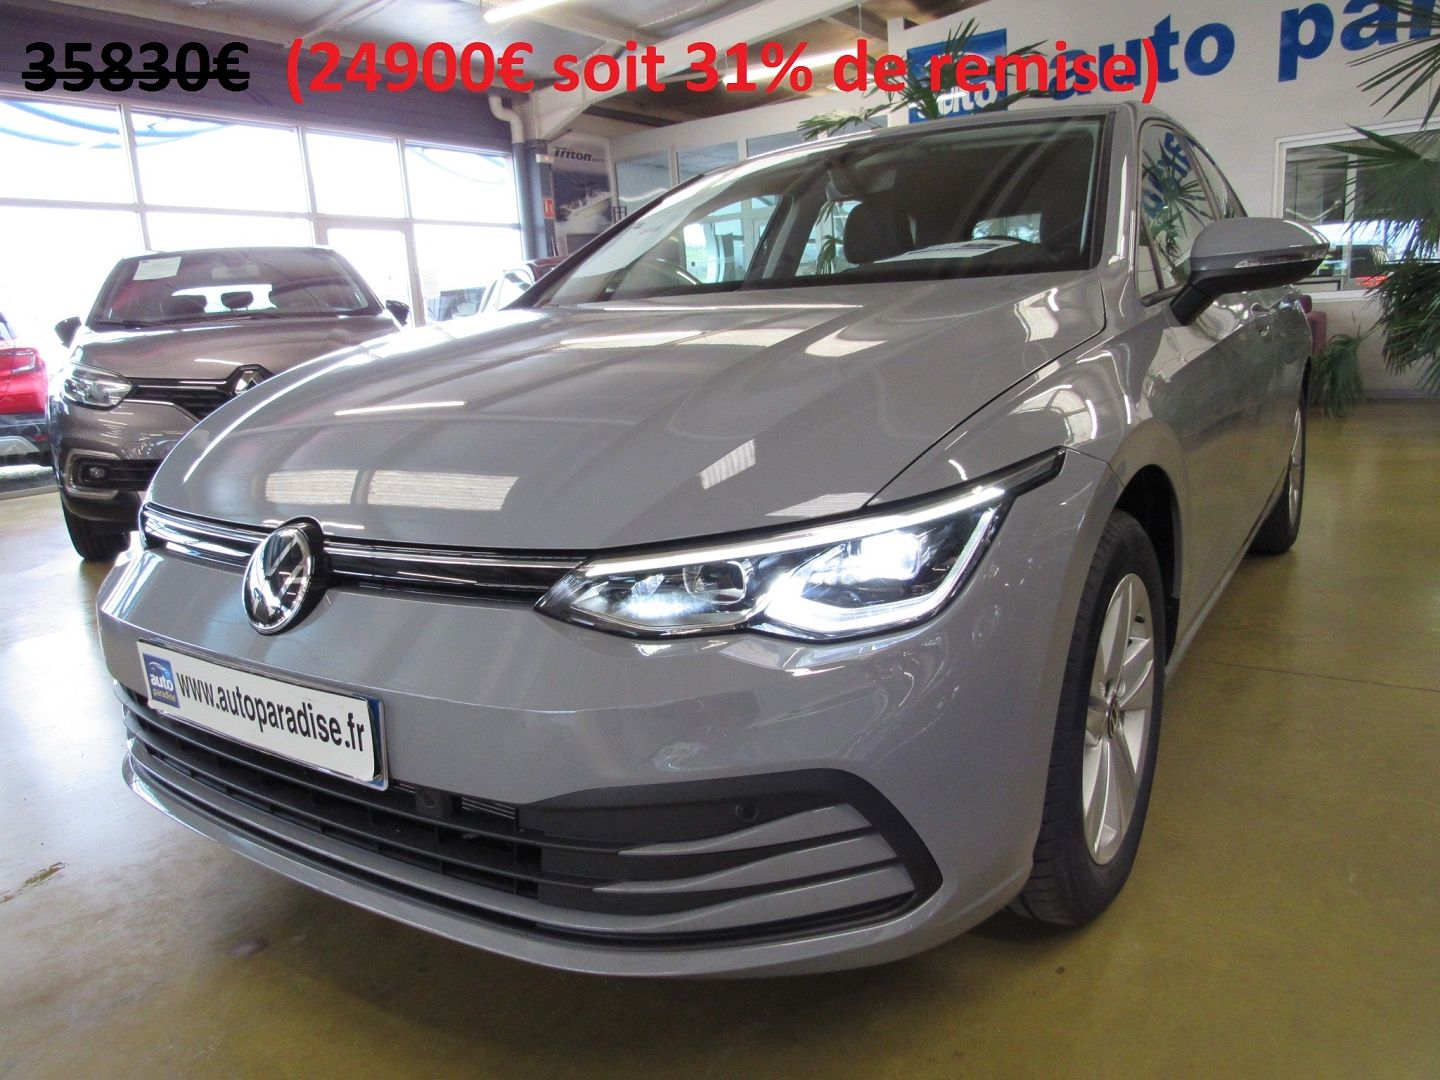 Véhicule d'occasion VOLKSWAGEN GOLF 8  1.5 TSI 150 LIFE + 5410 EUROS D'OPTIONS NEUVE -25%